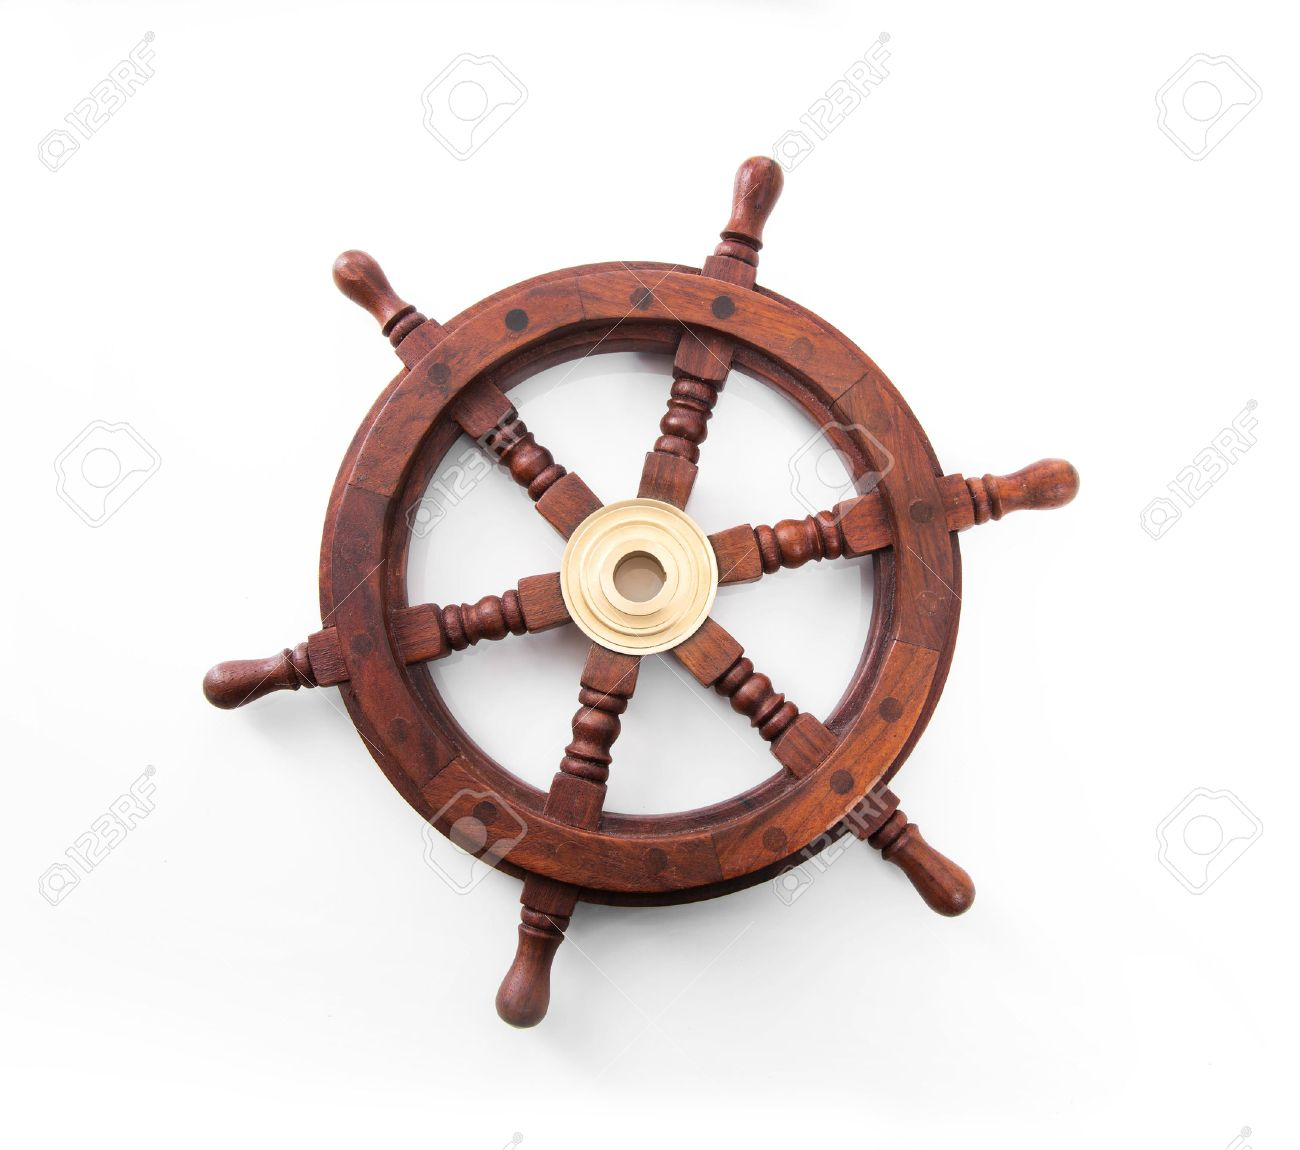 Old boat steering wheel isolated on the white background. Banque d'images - 37790971